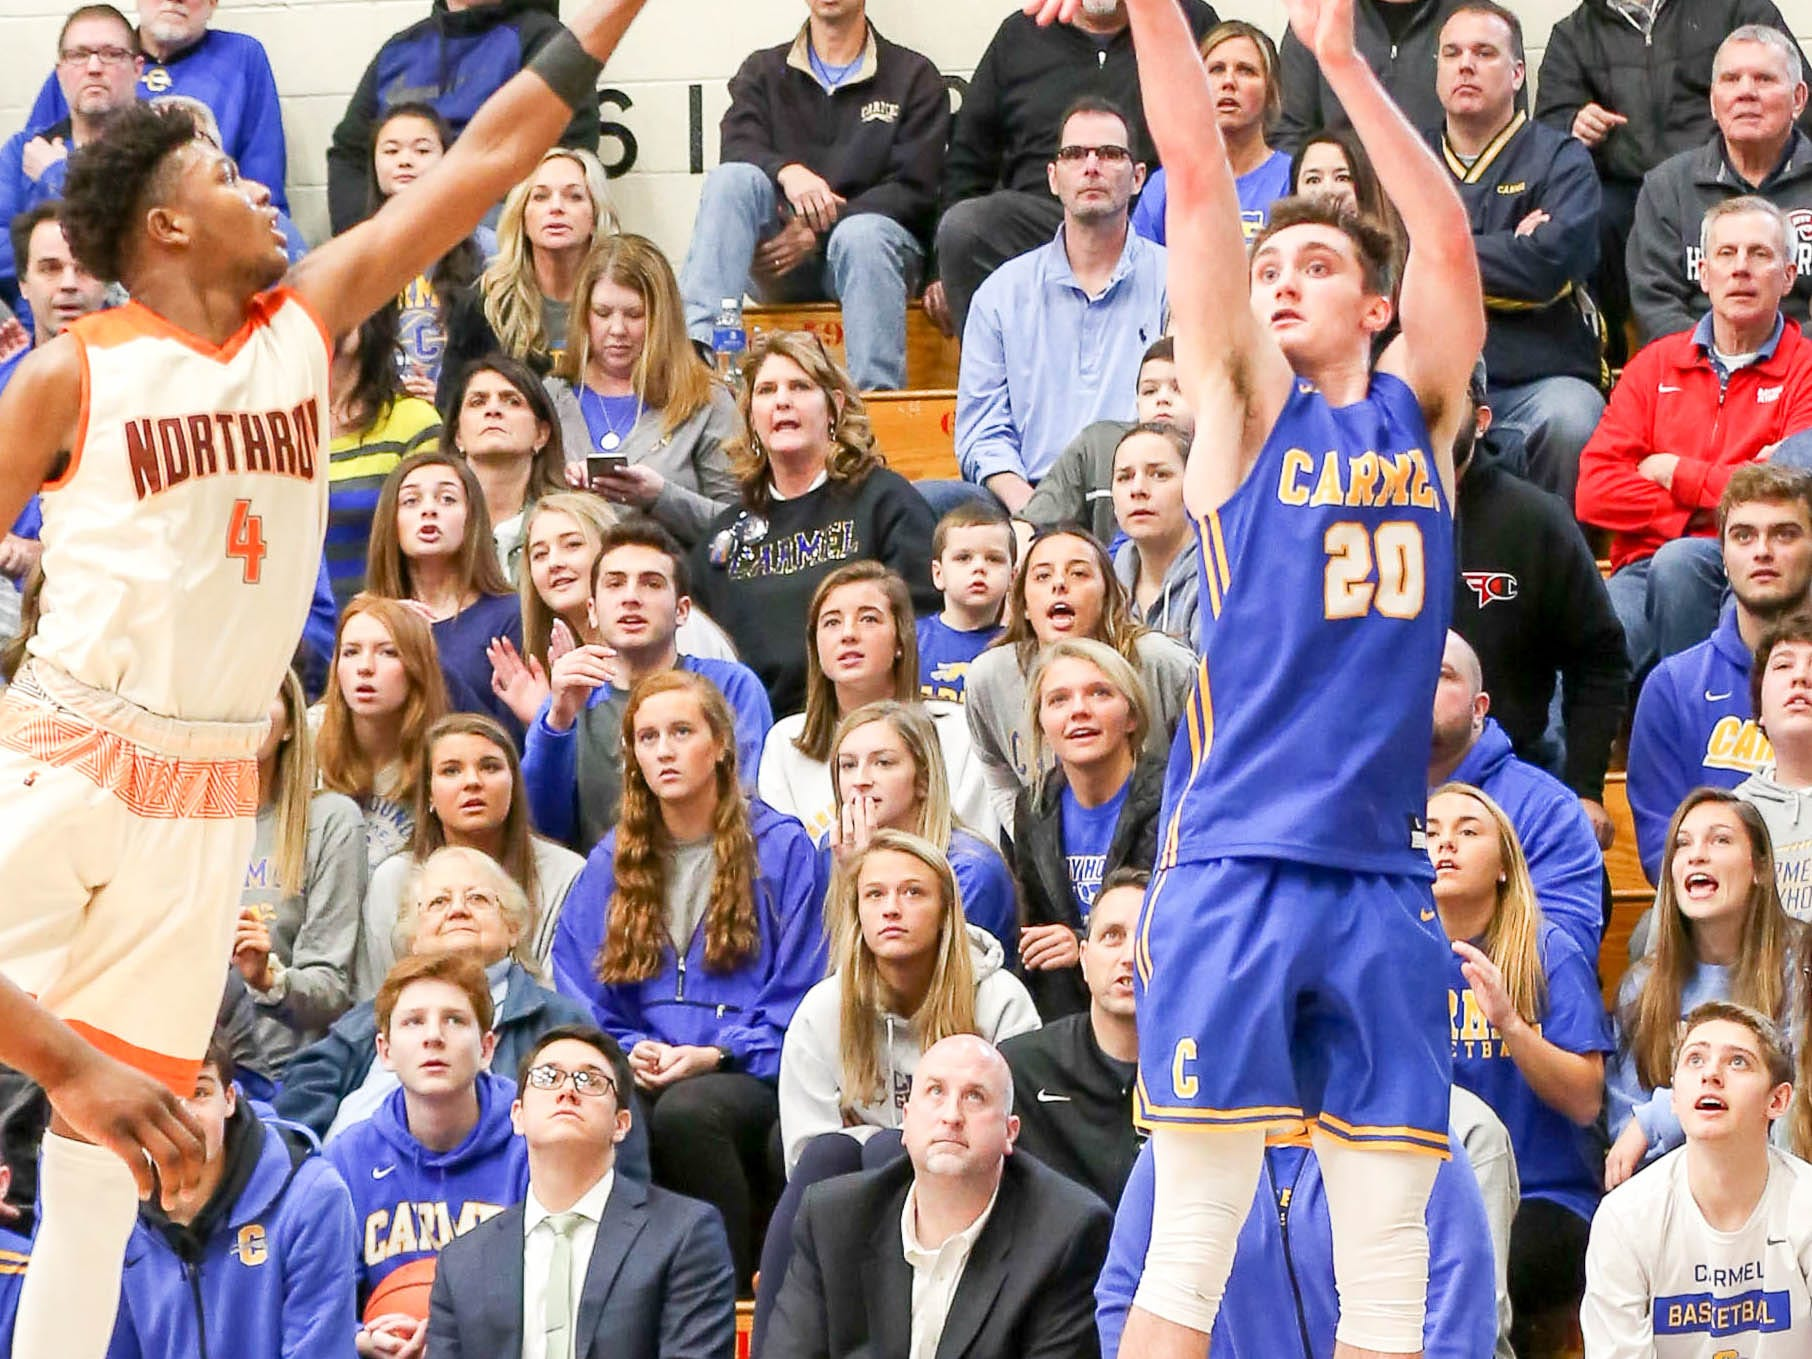 Carmel's Andrew Owens (20) makes a 3 point shot during the second half of Carmel vs. Fort Wayne Northrop High School in the IHSAA Varsity Boys Regional Semifinals held at Logansport High School, March 9, 2019.